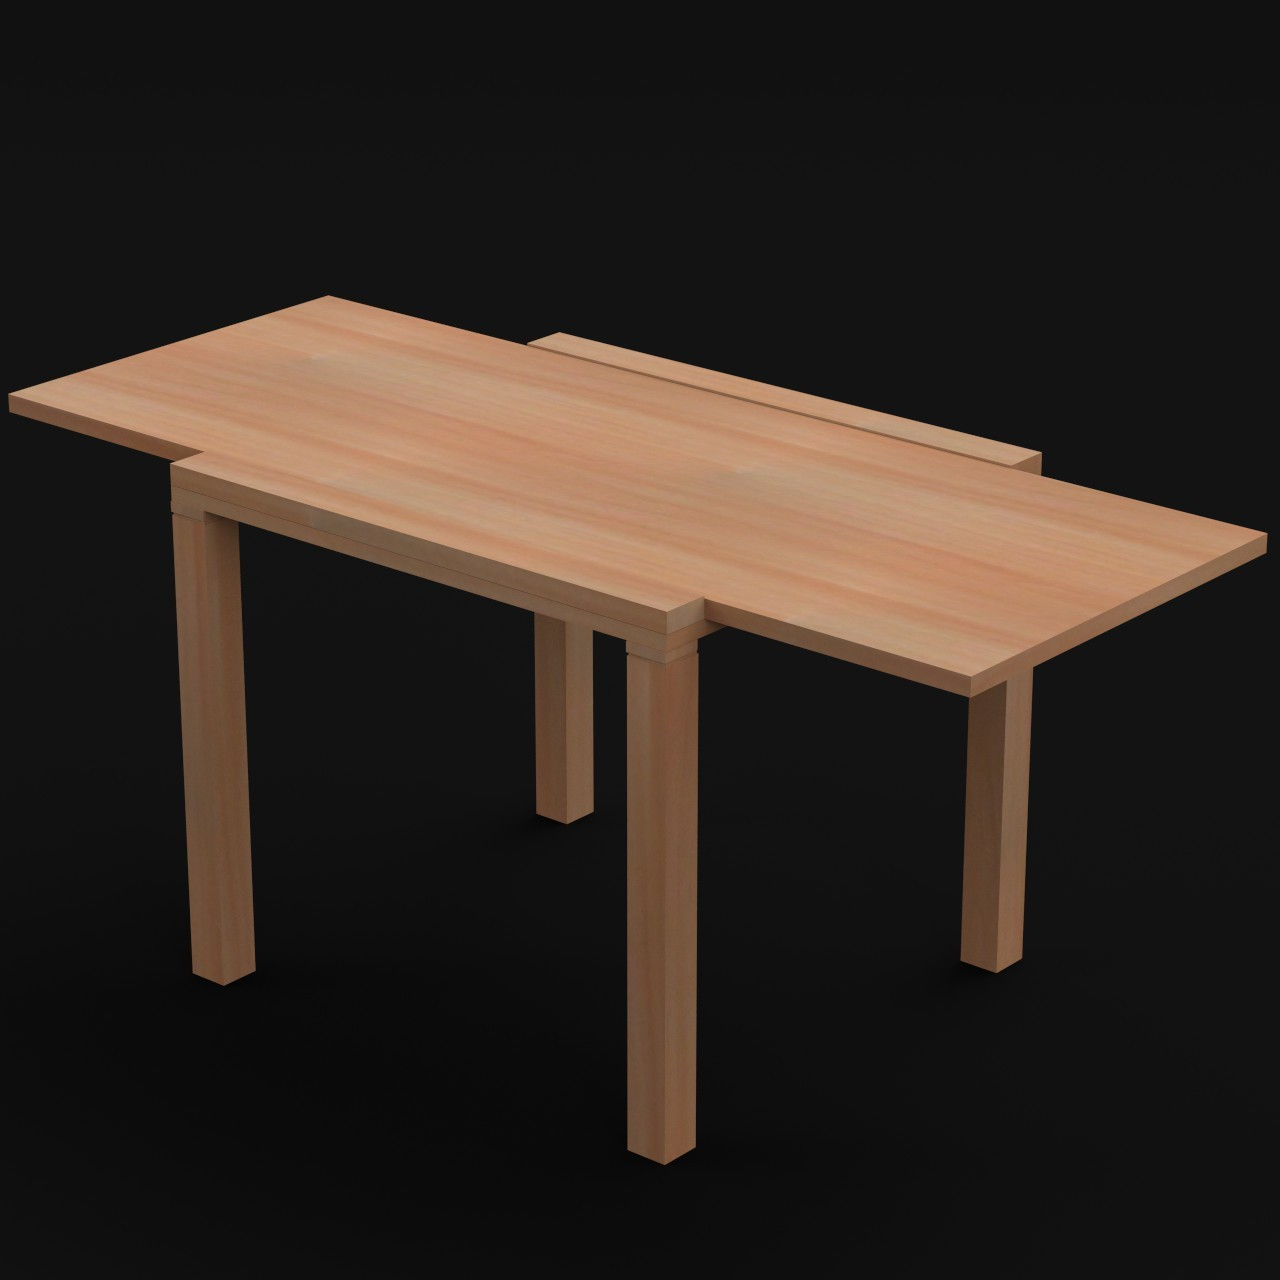 Wooden extended table uv 3ds for Prem table 99 00